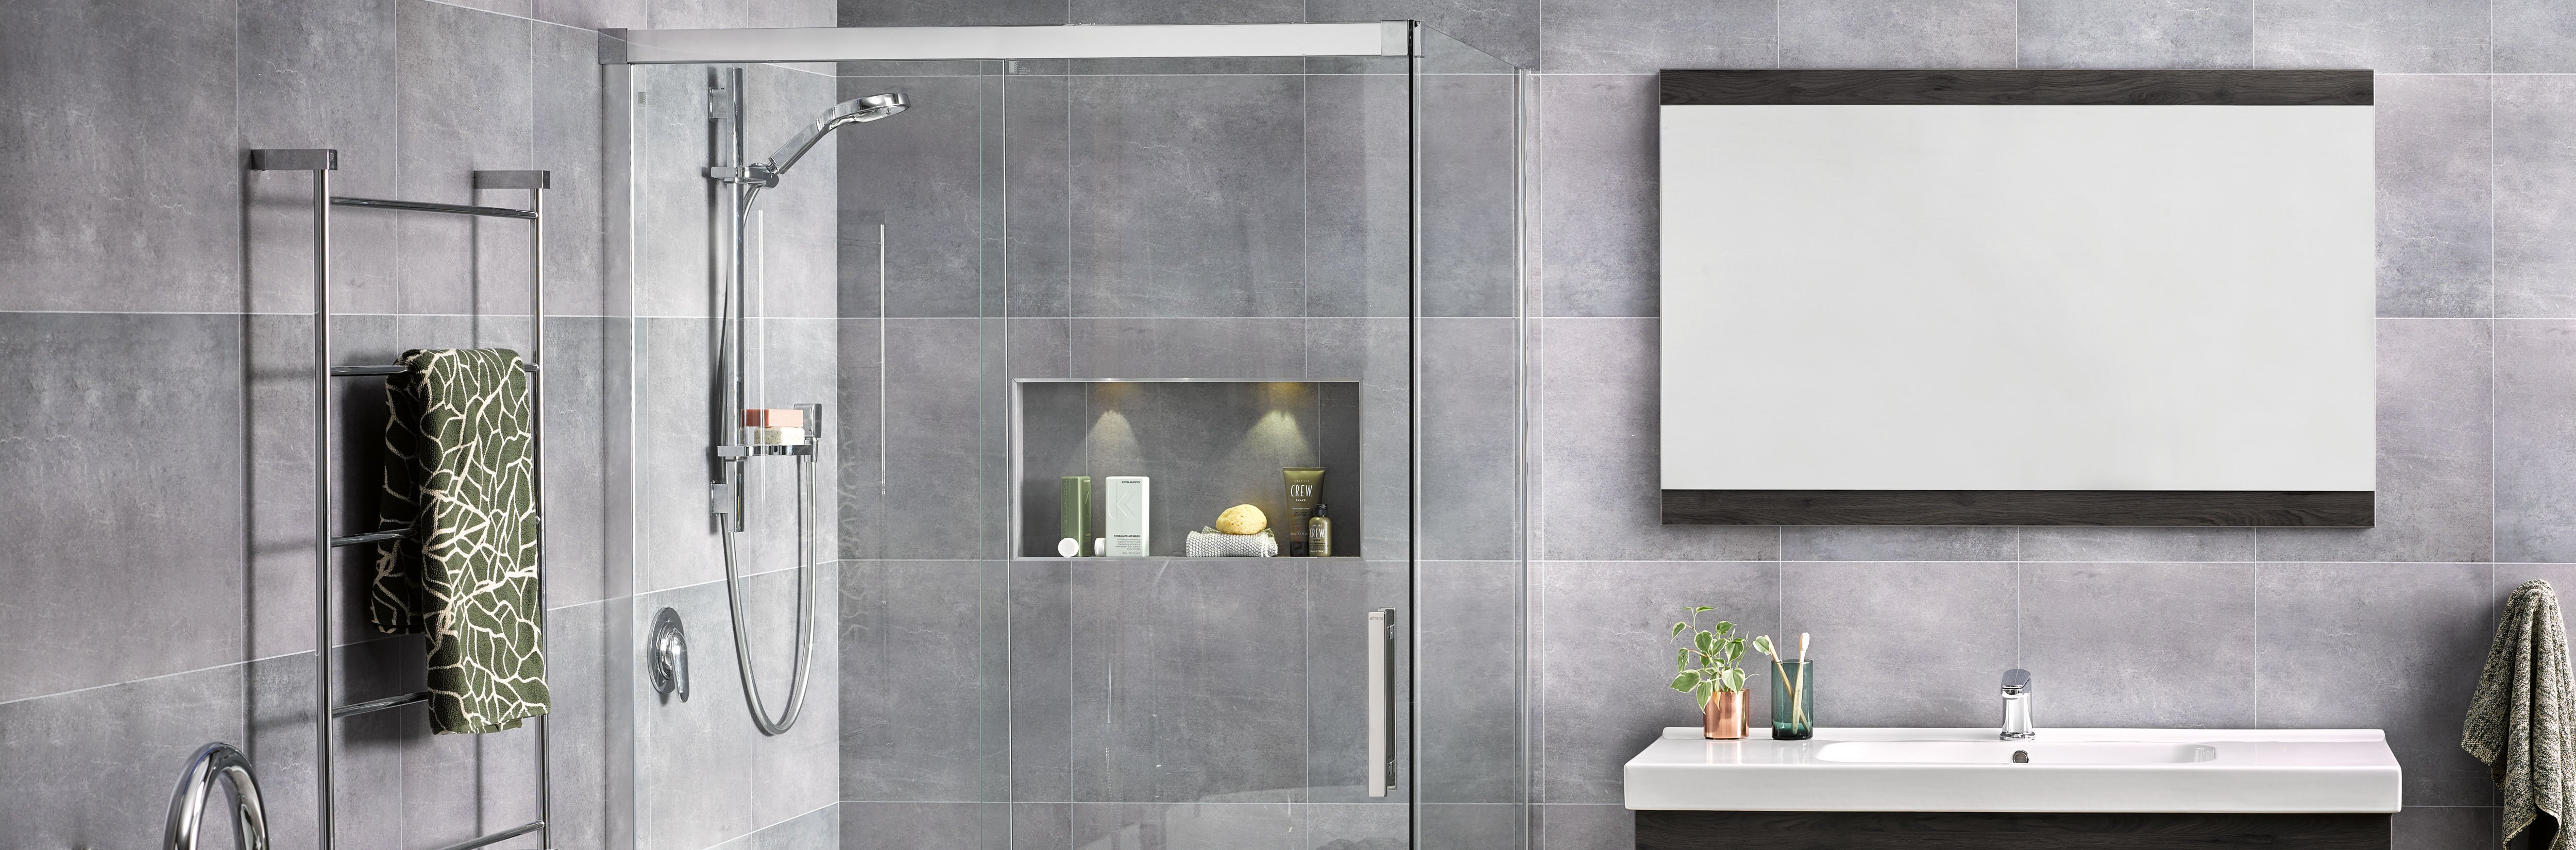 Athena bathrooms bathroomware designed for new zealand homes for Small bathroom designs nz